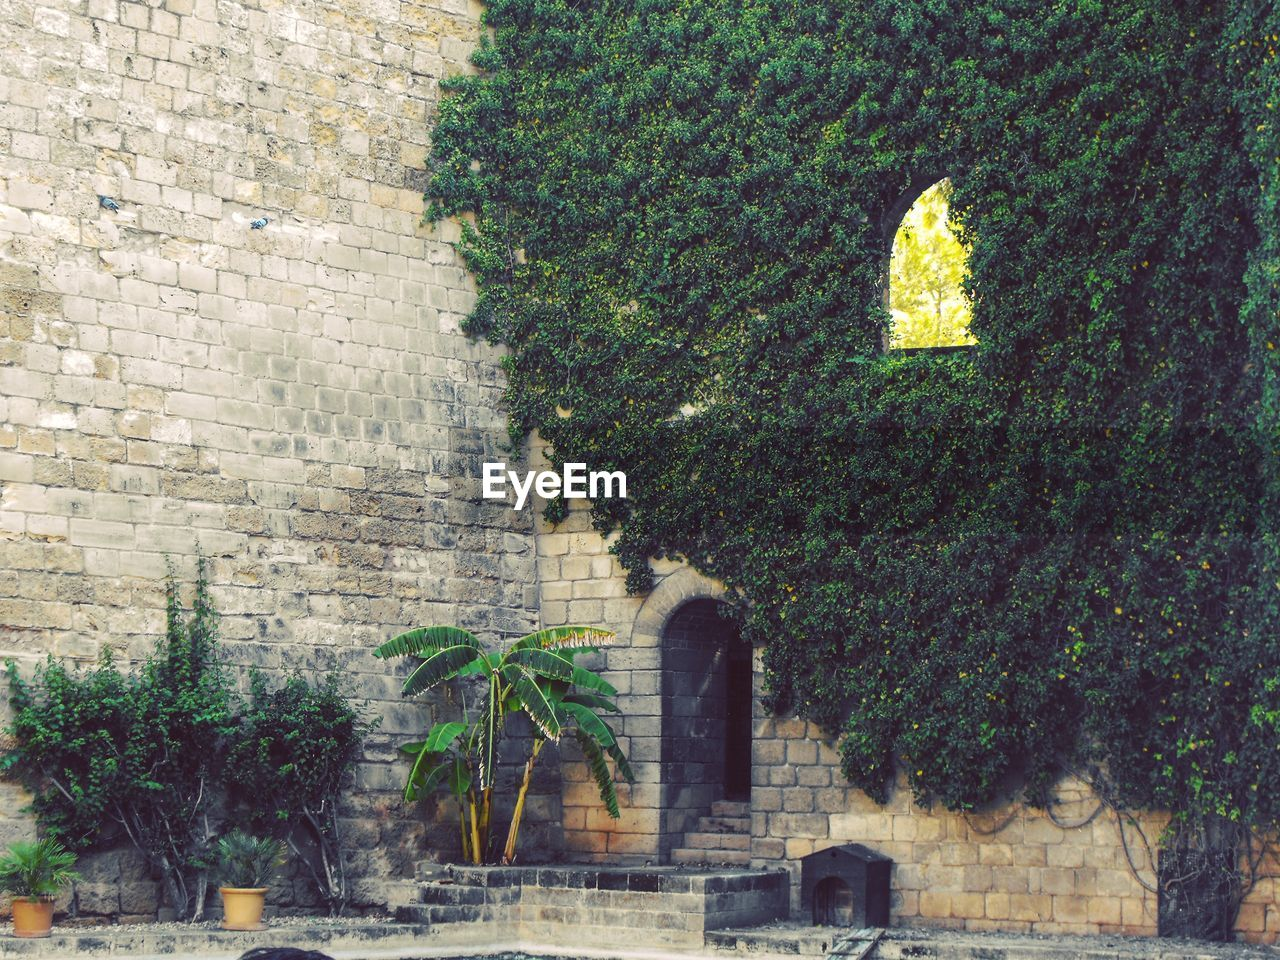 architecture, plant, growth, tree, built structure, outdoors, day, building exterior, no people, ivy, nature, city